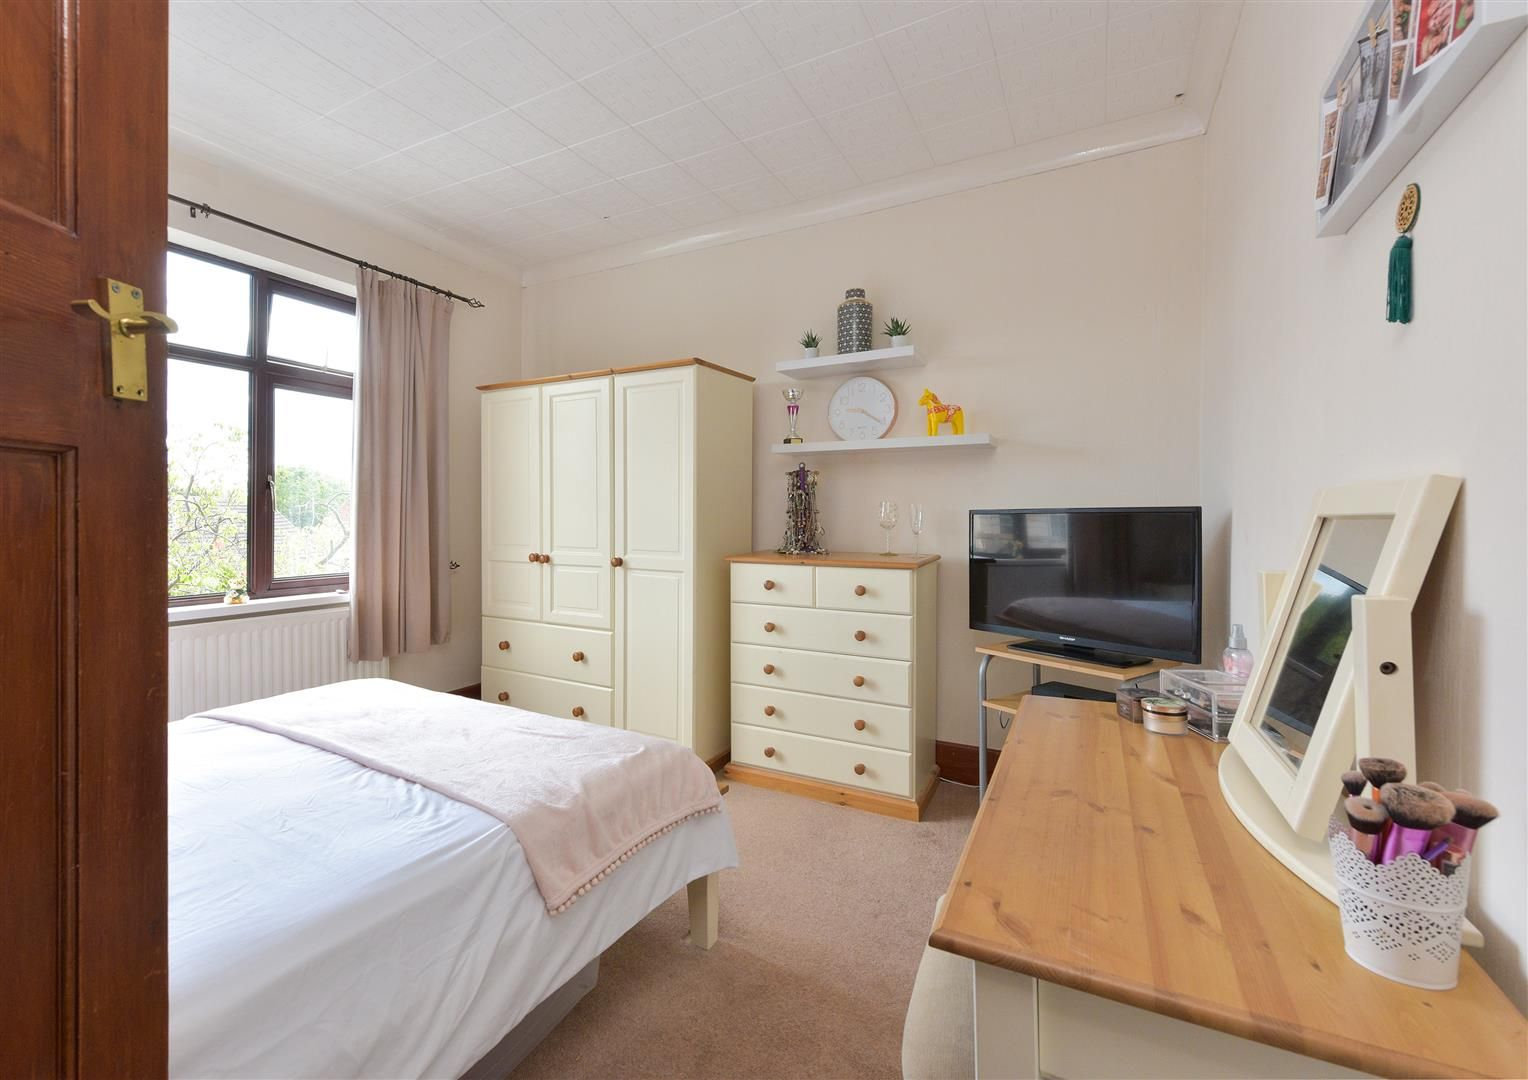 5 bed semi-detached for sale  - Property Image 15